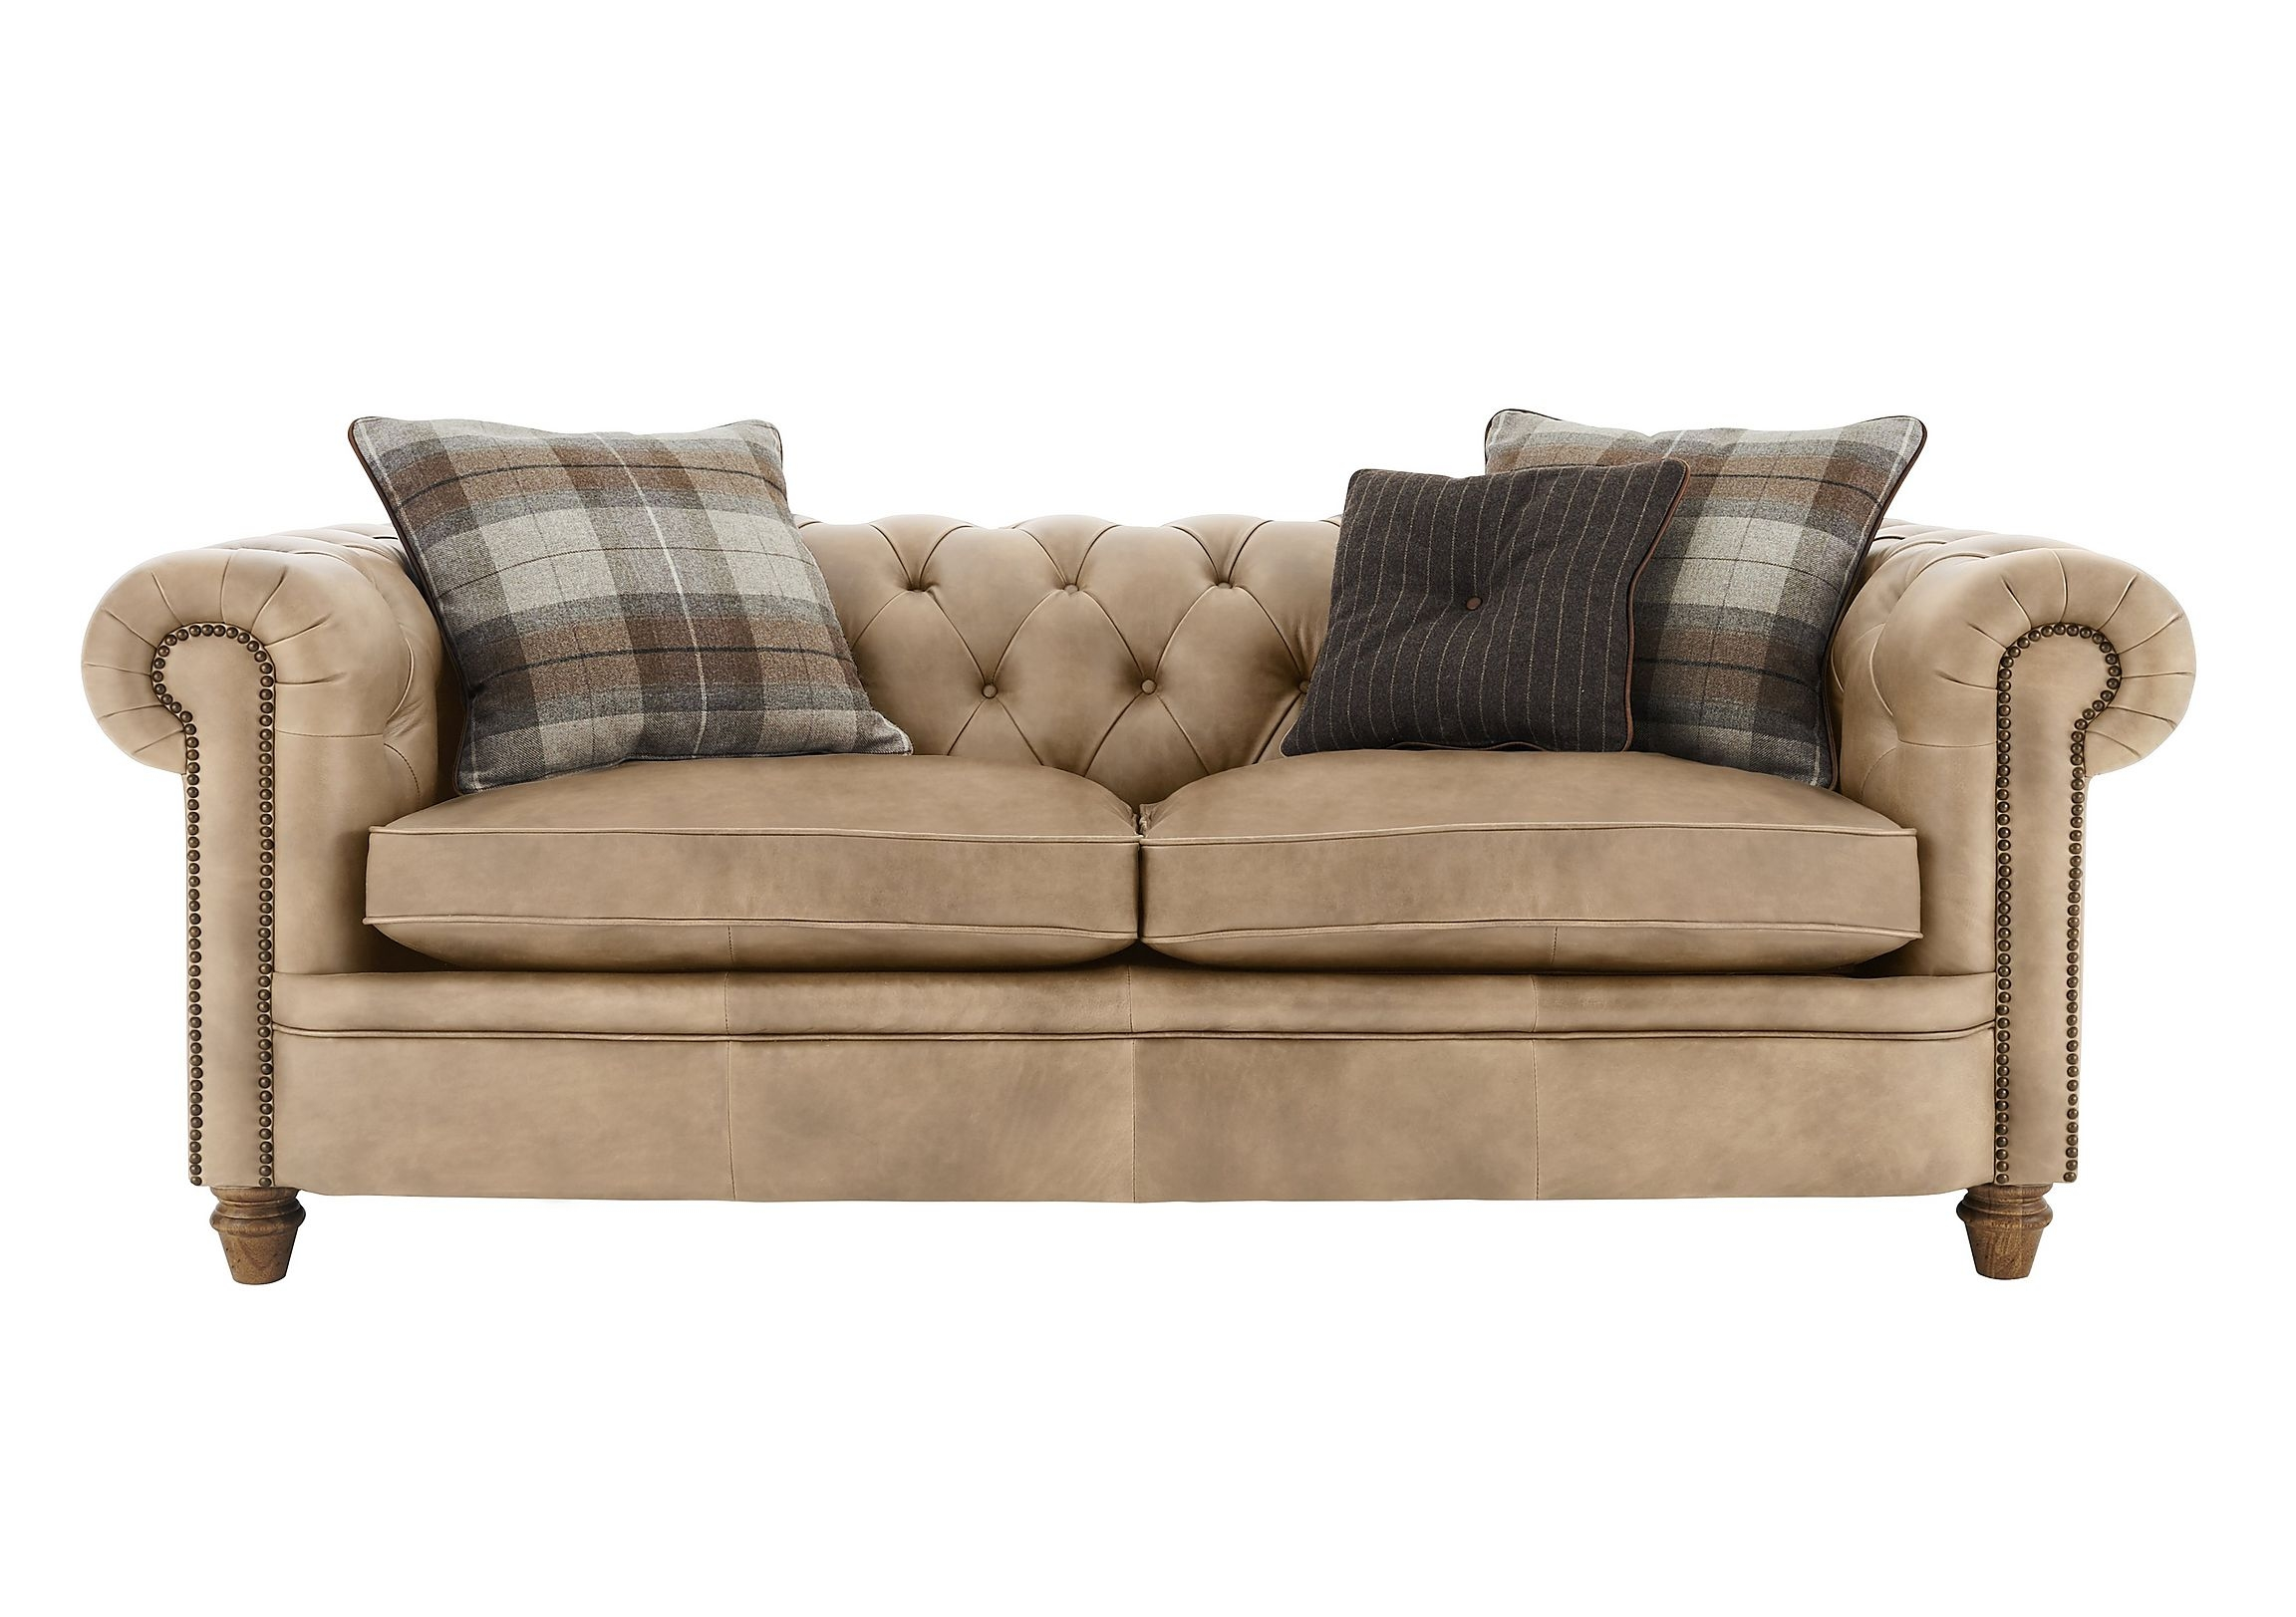 New England Newport 3 Seater Leather Sofa Furniture Village In Newport Sofas (Image 6 of 15)